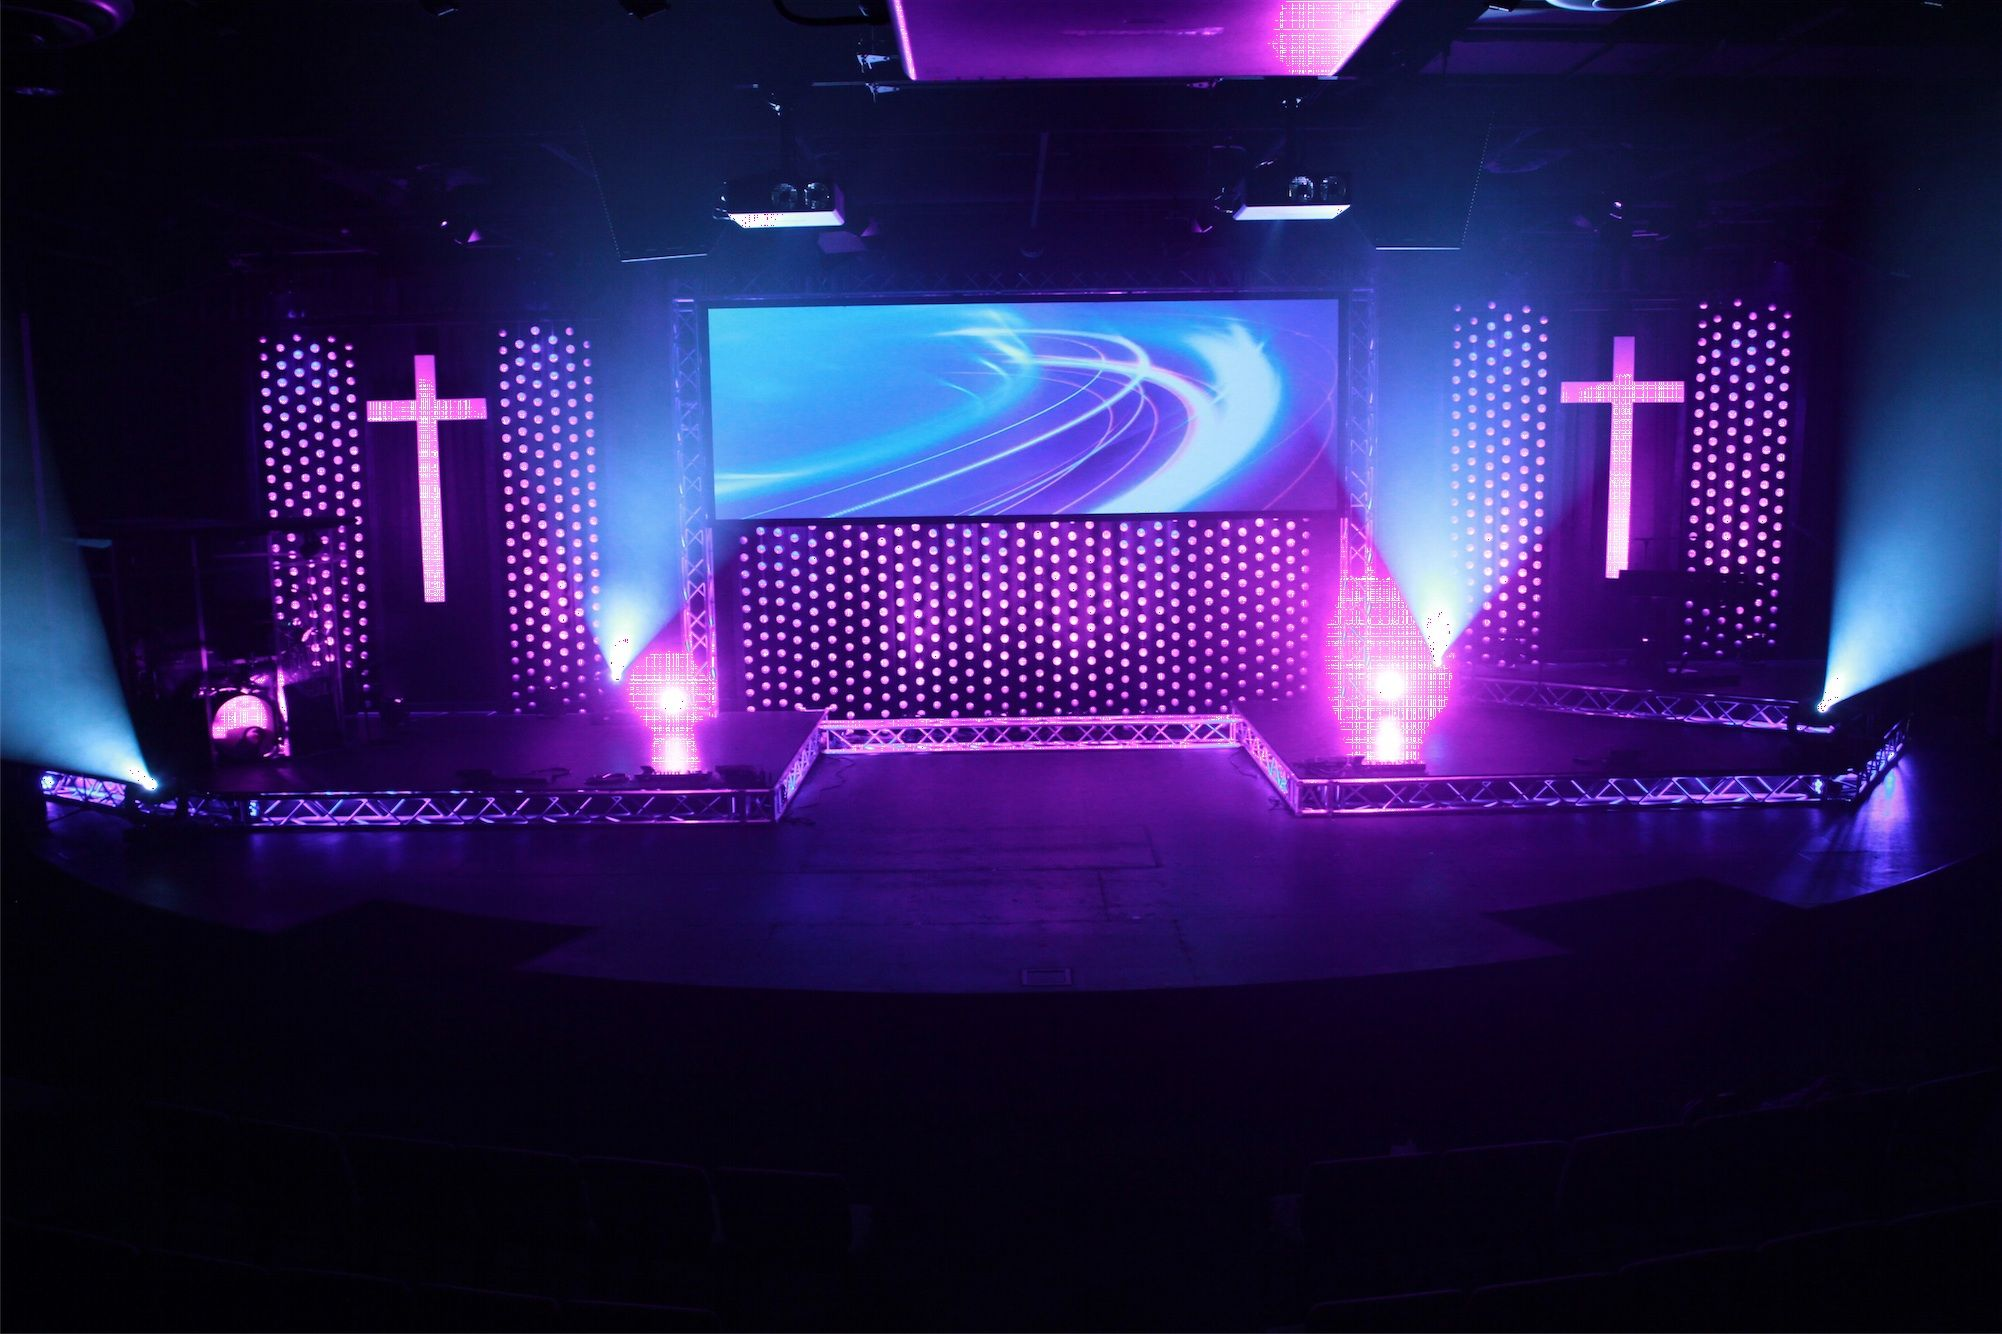 Throwback We Ll Have A Ball With Images Church Stage Design